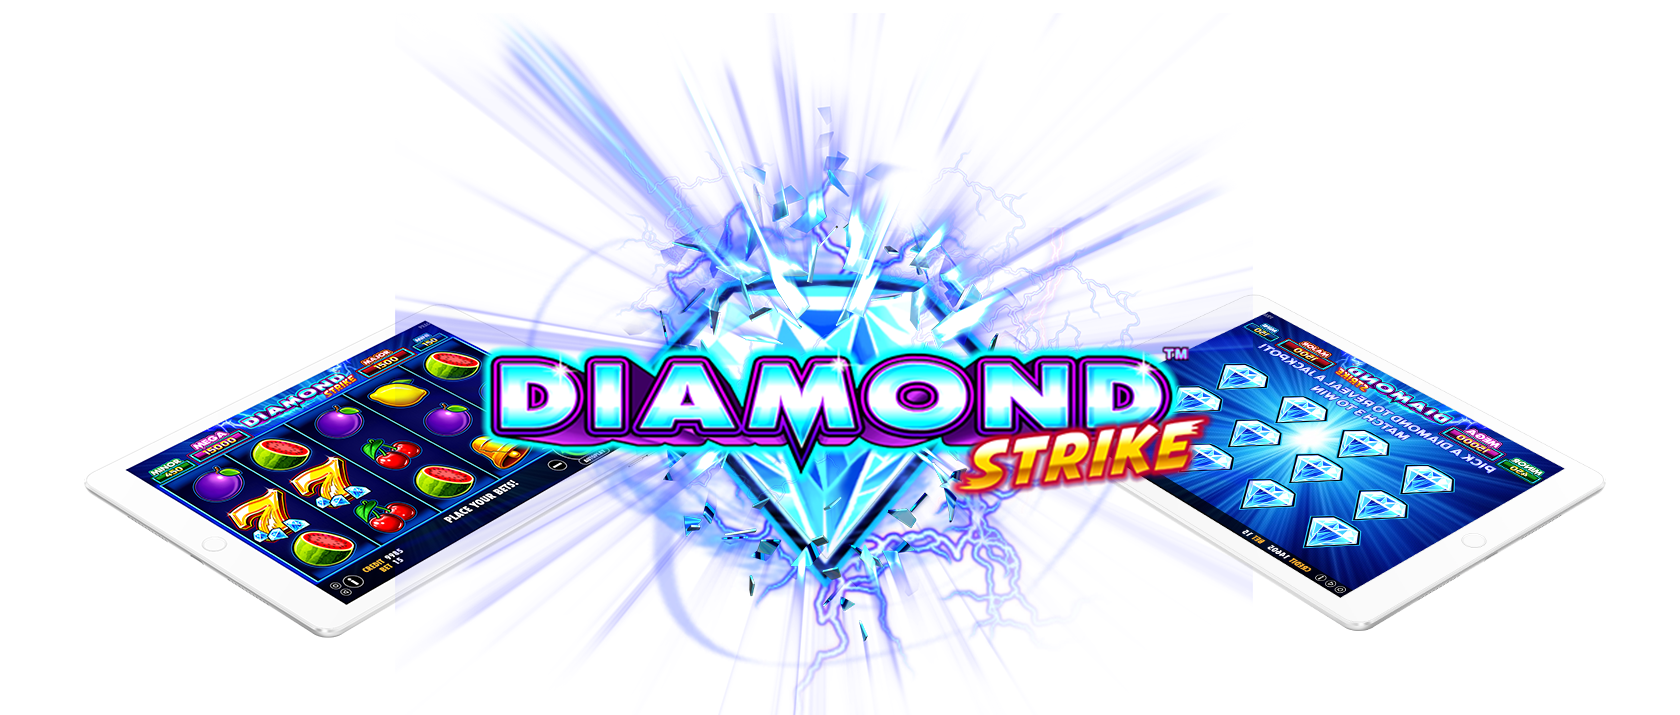 diamond strike slots game logo